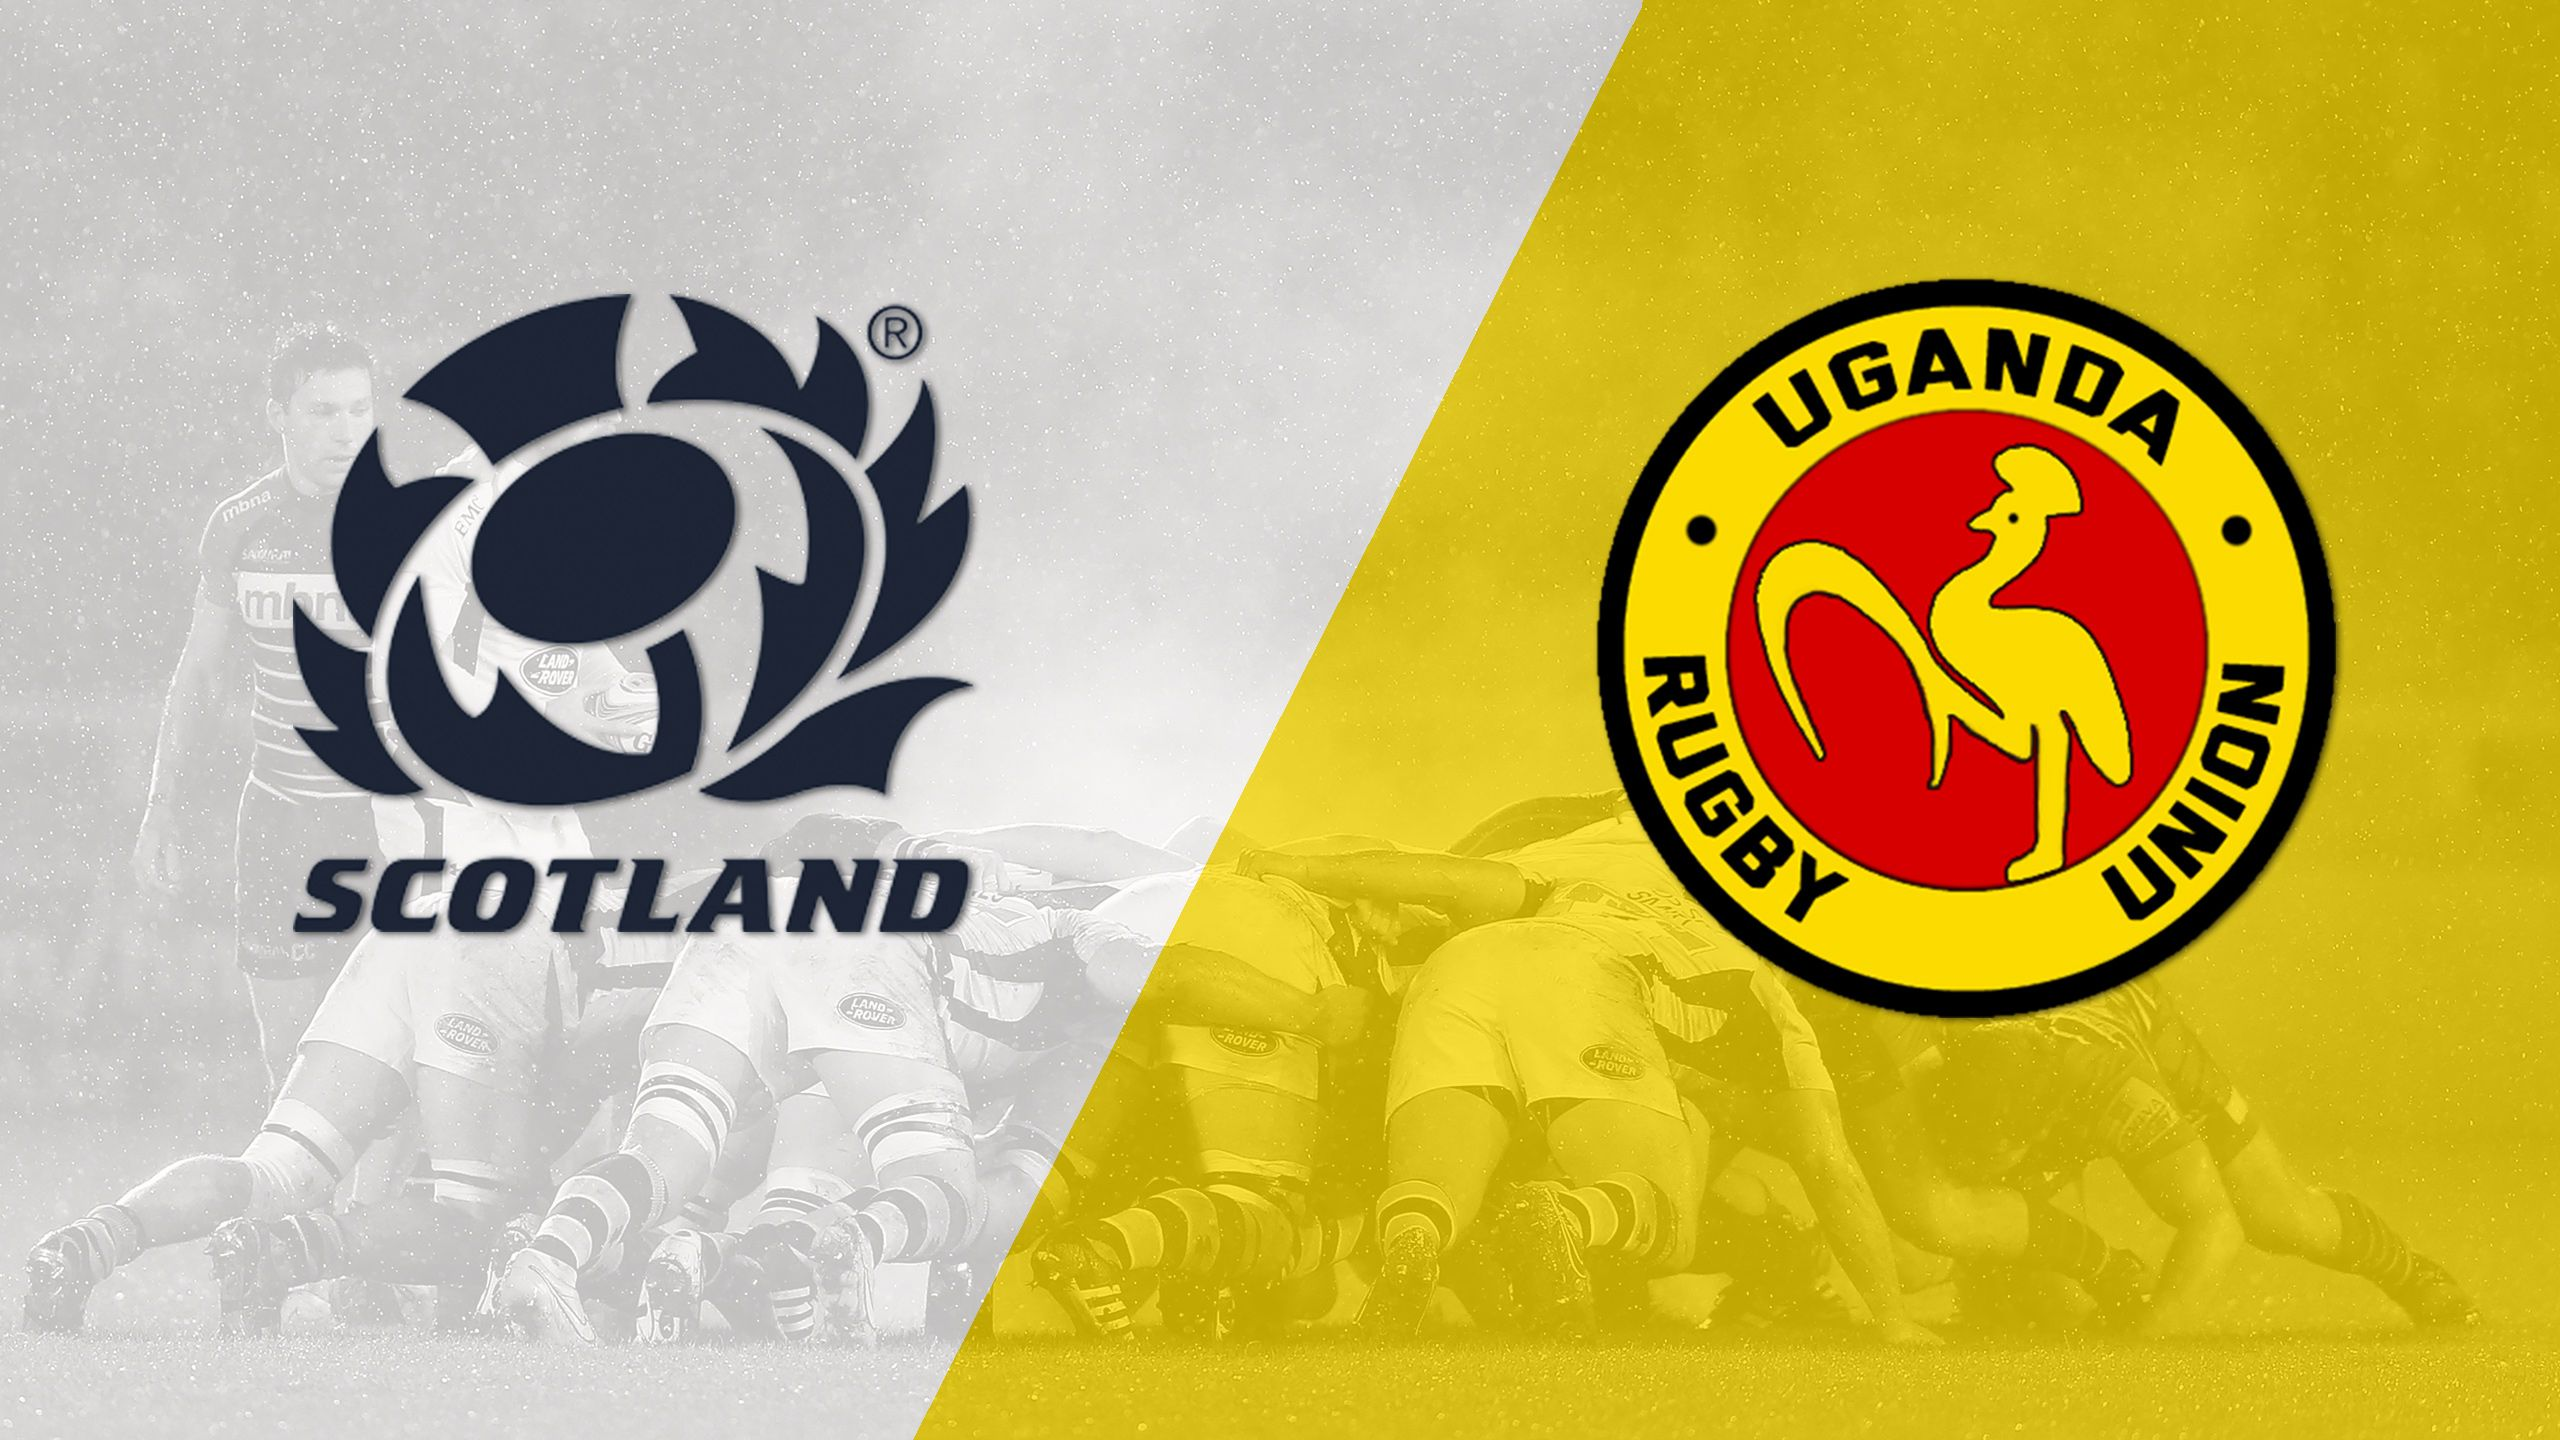 Scotland vs. Uganda (World Rugby Sevens Series)